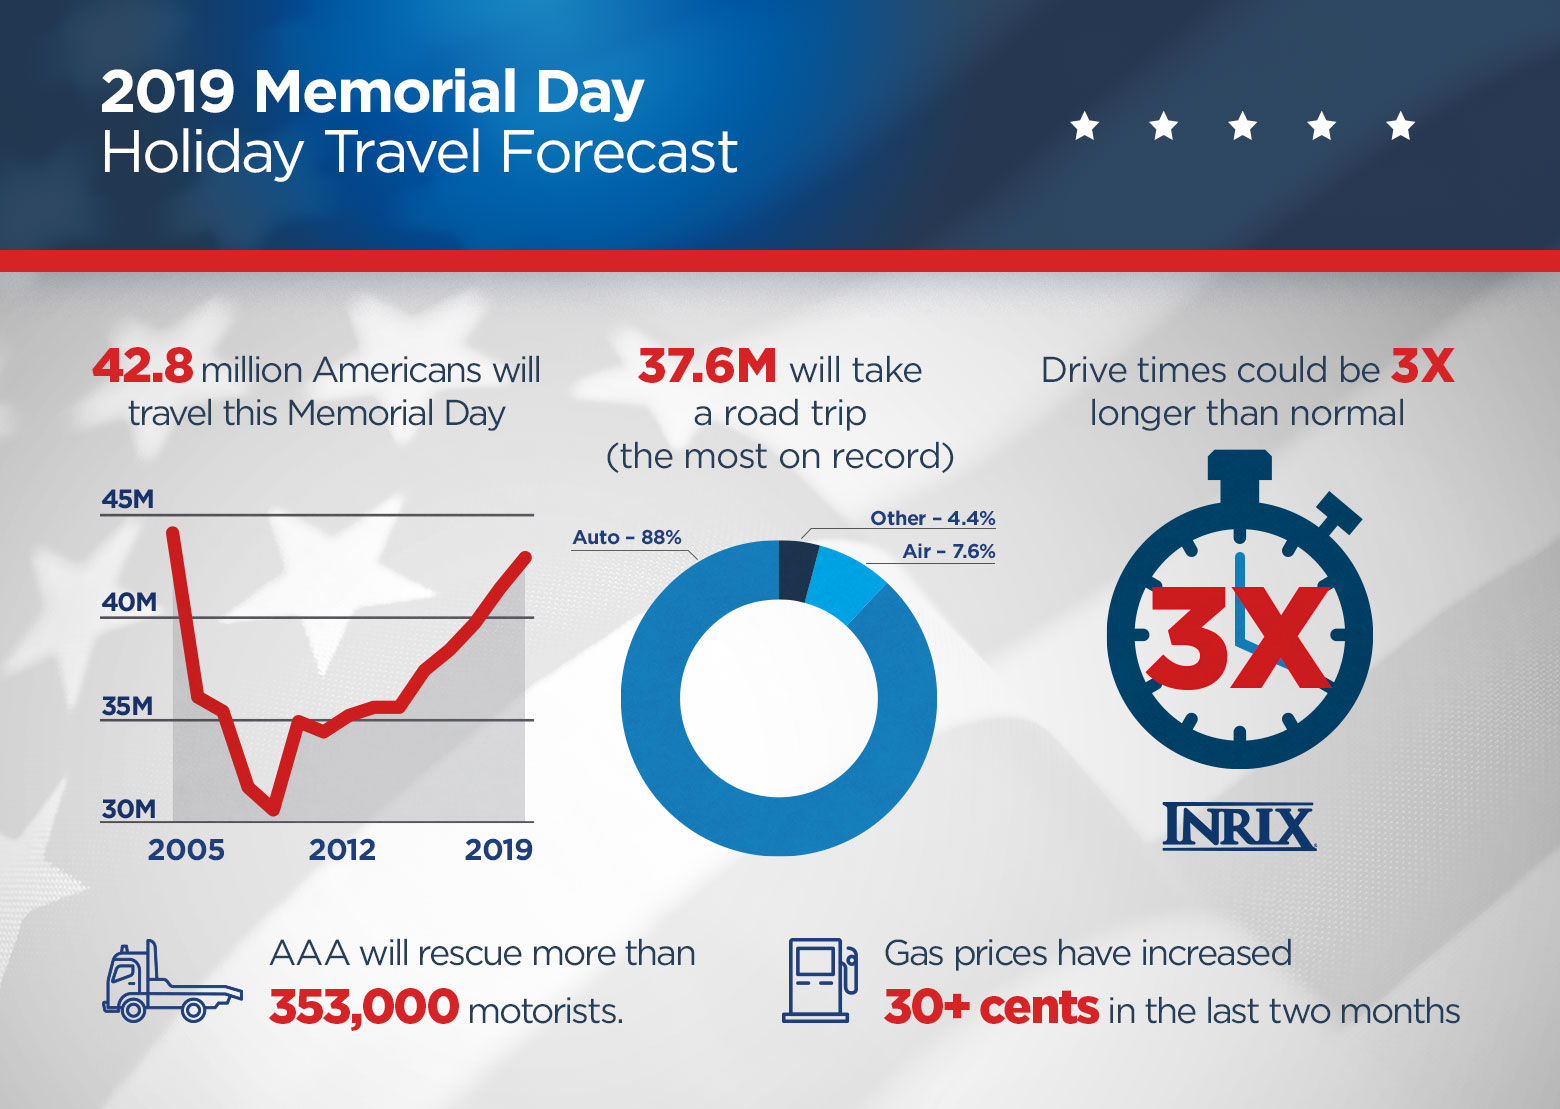 2019-Memorial-Day-Holiday-Travel-Forecast-Graphic---Full-Infographic.jpg